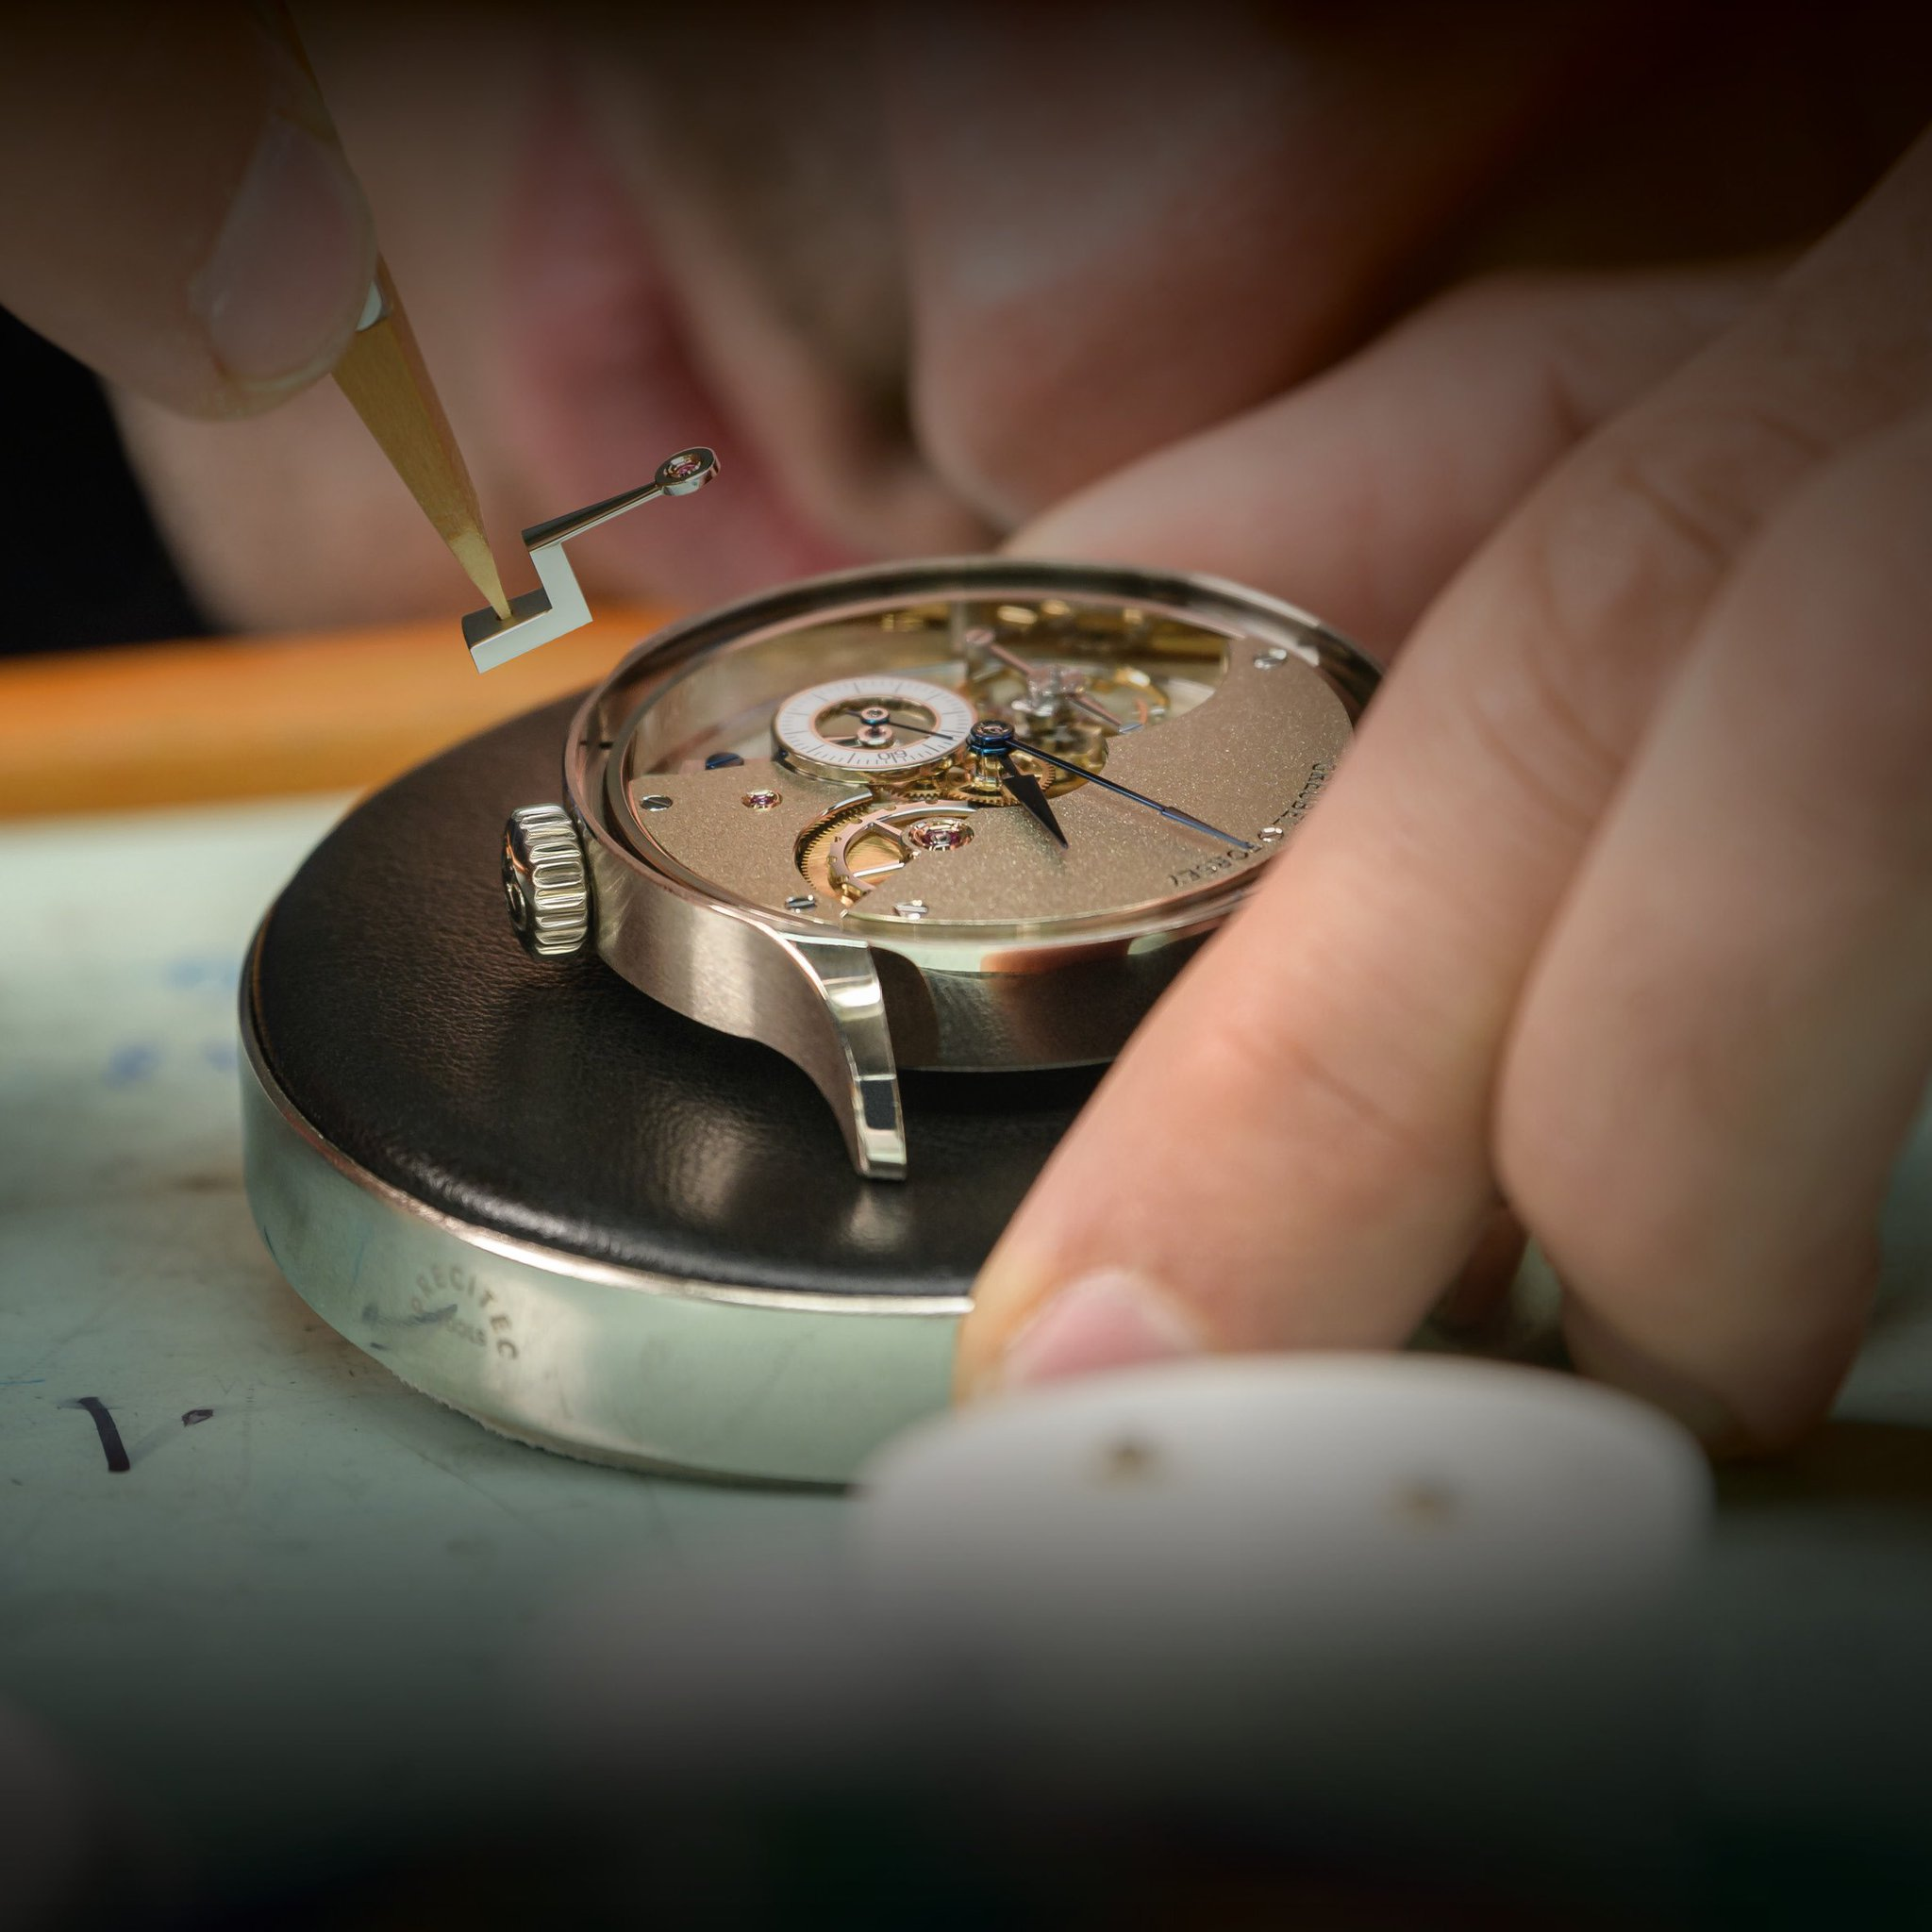 We are very excited to unveil one of our major project:  Hand Made 1, the summit of true hand-watchmaking. Follow us on FB & IG! #GreubelForsey #Artofinvention https://t.co/UhuKzY0nLq